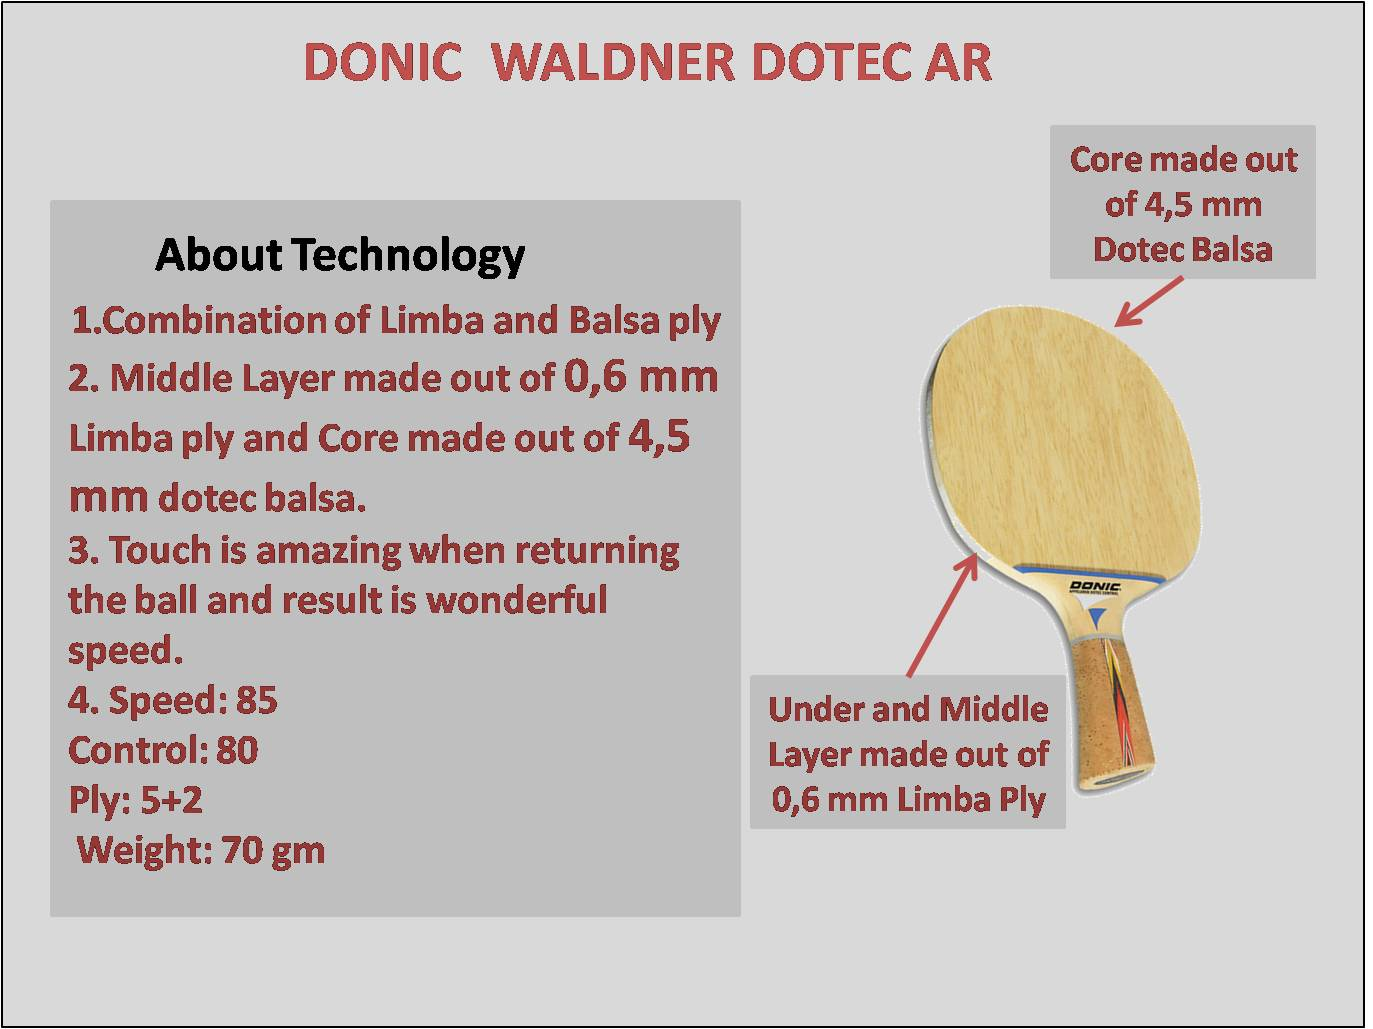 About Donic Waldner Dotec AR Table Tennis Rackets